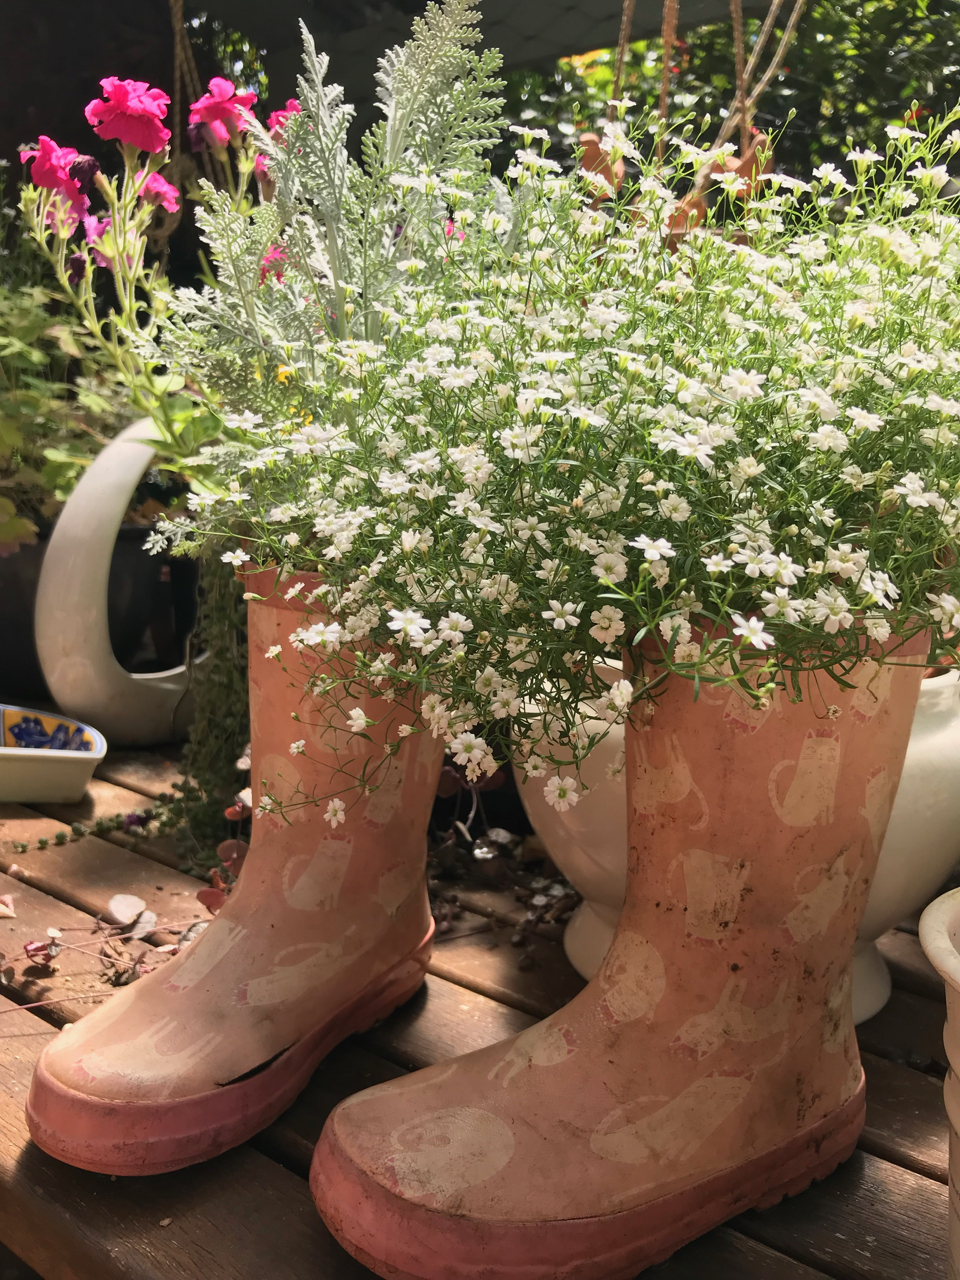 White flowers planted in old gumboots